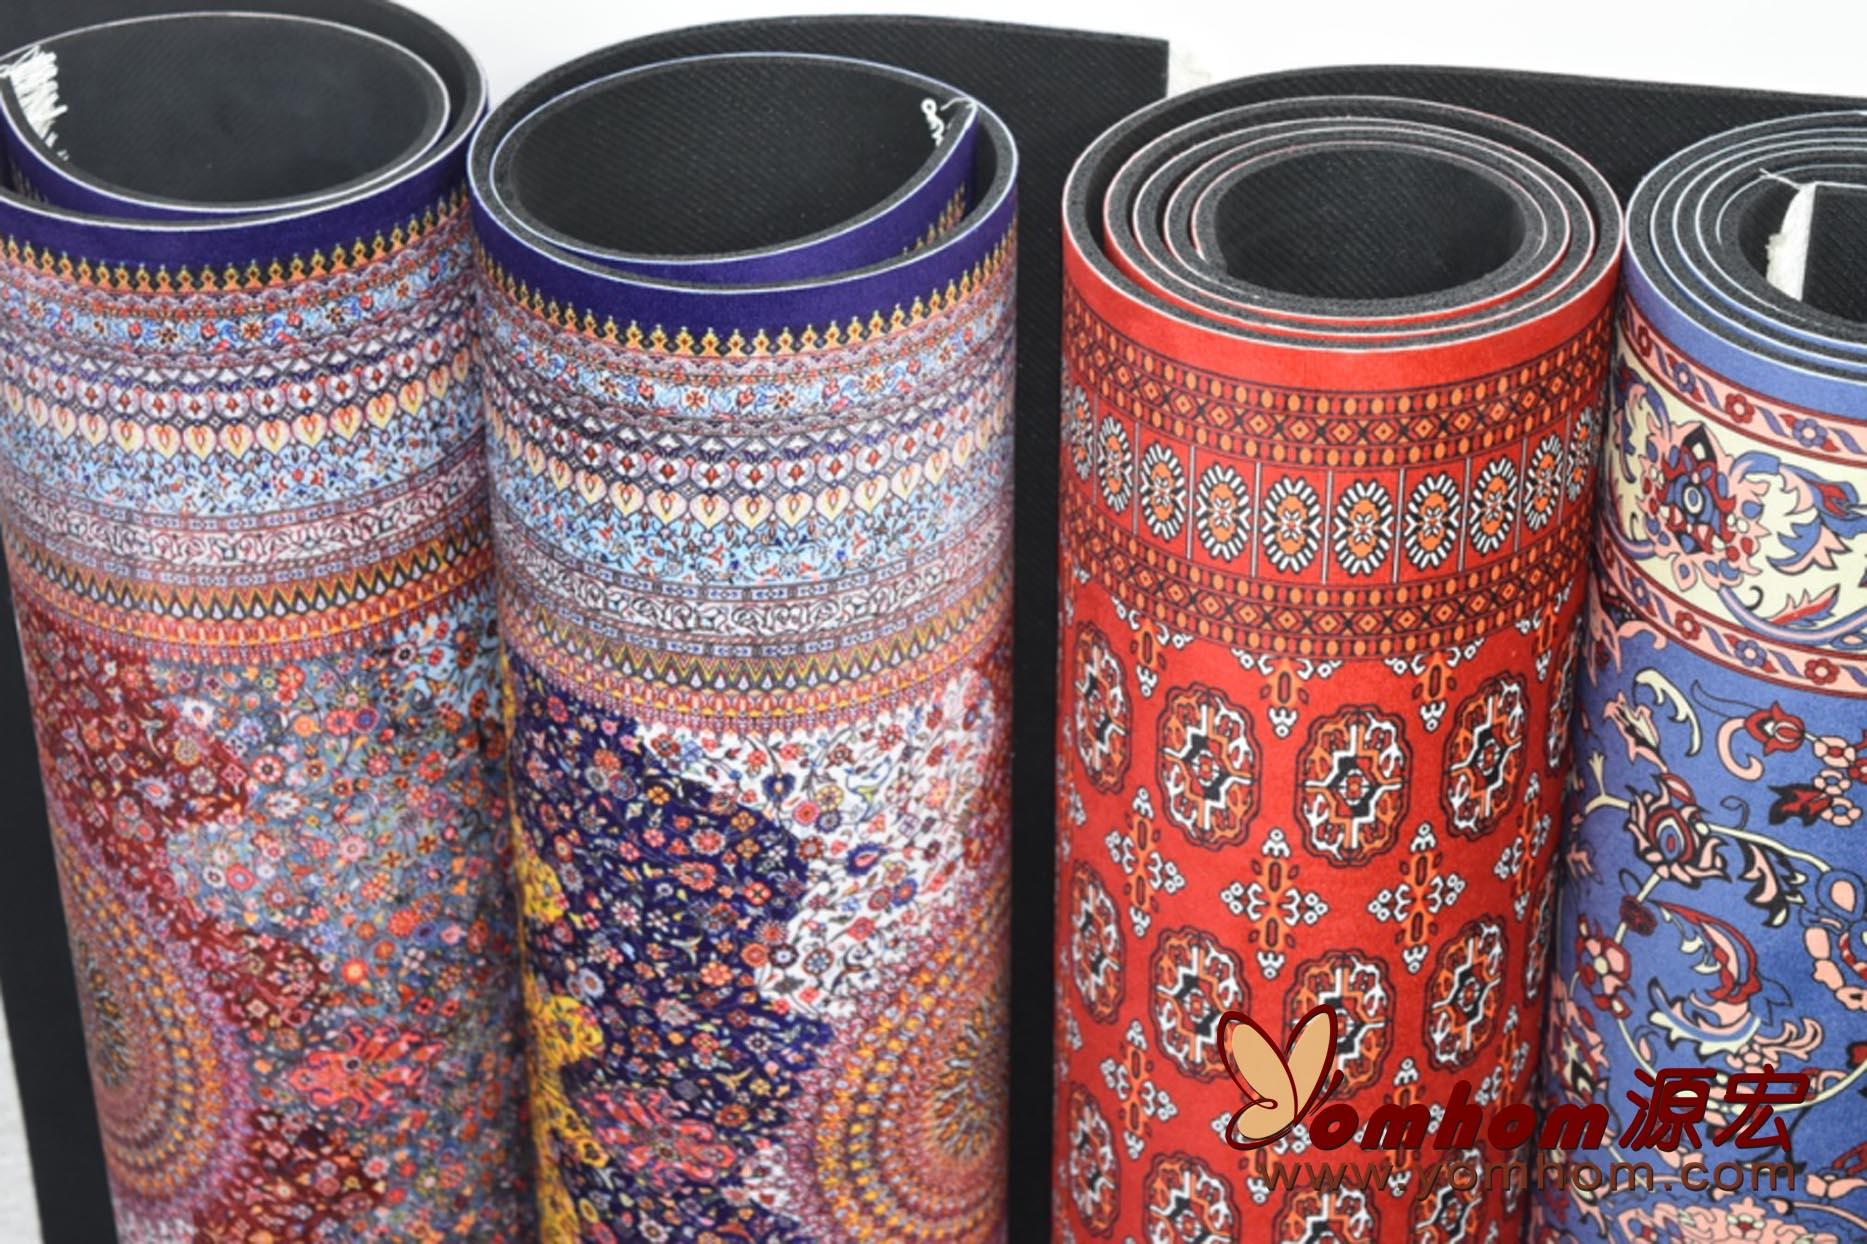 Customized rug design yoga mats 2